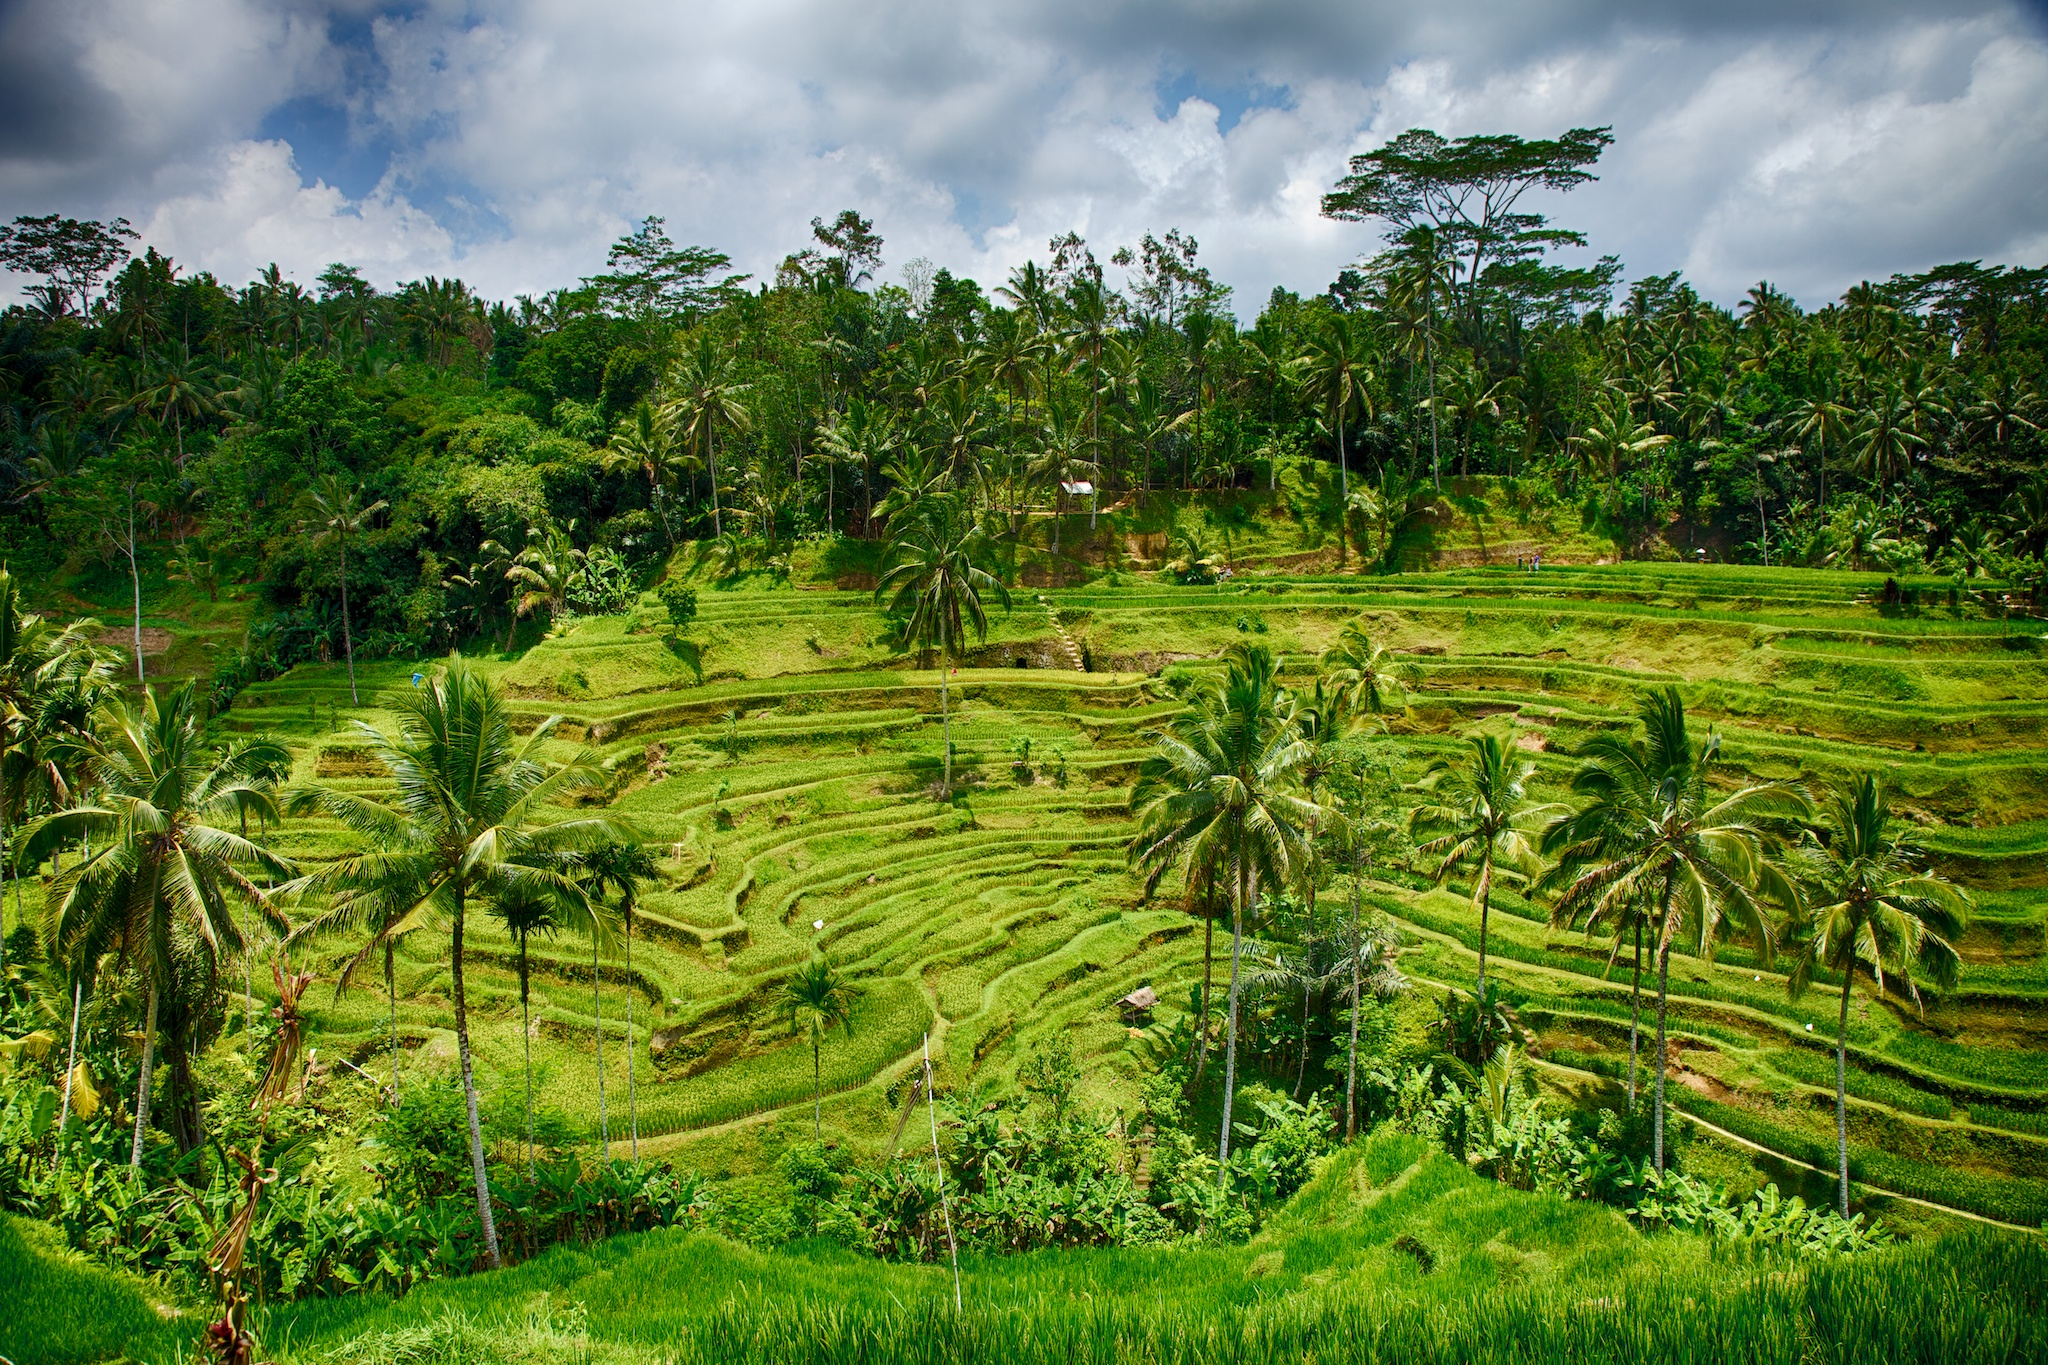 Probably the single most beautiful location we saw in Bali. While a total tourist trap, the rice terraces are very cool, and just something you don't see in our part of the world.